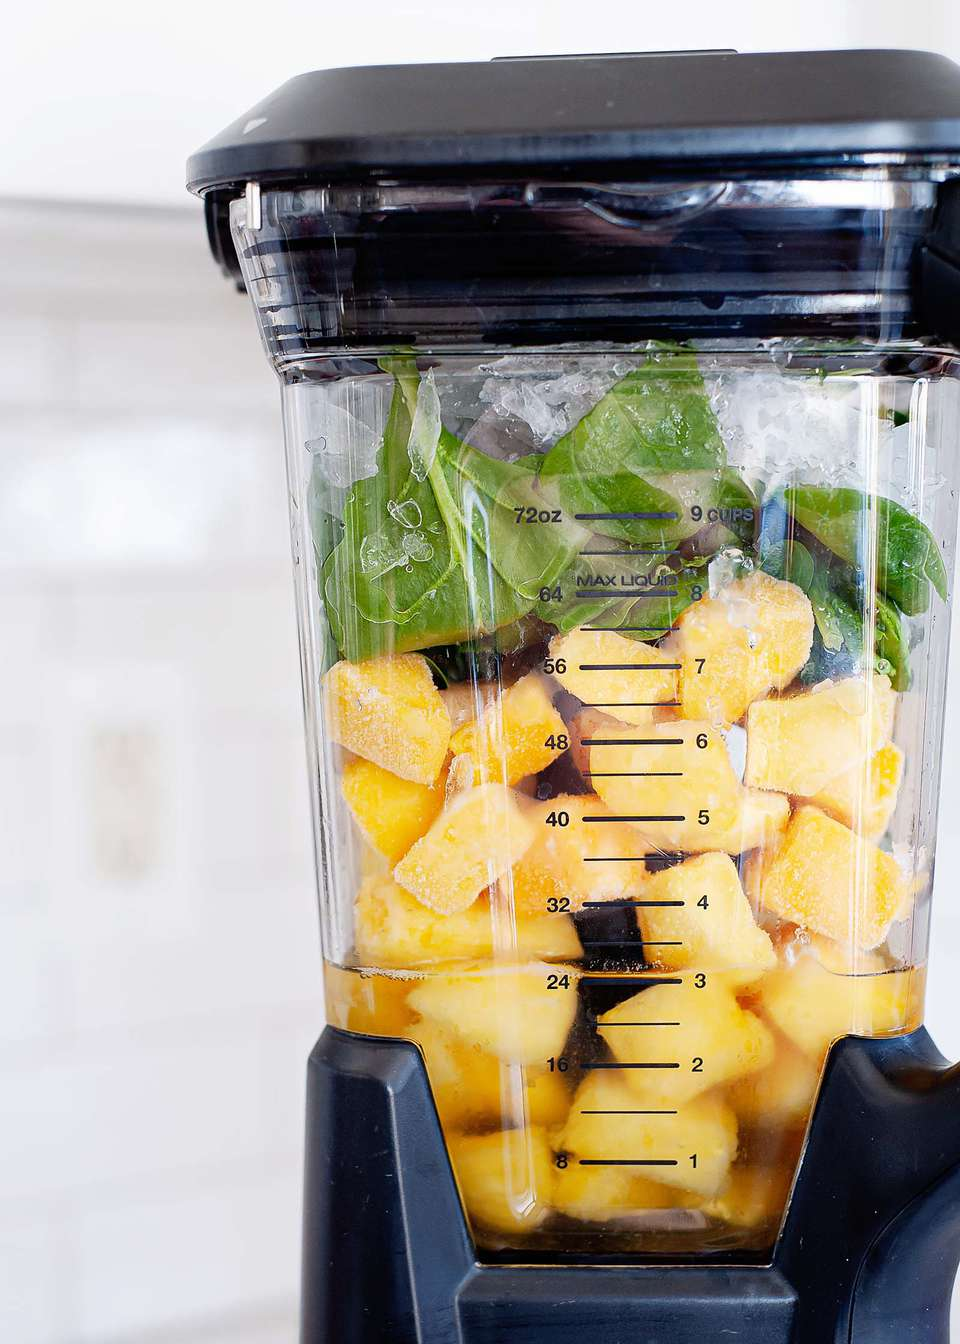 Close up view of a high speed blender jar with pineapple and spinach inside.